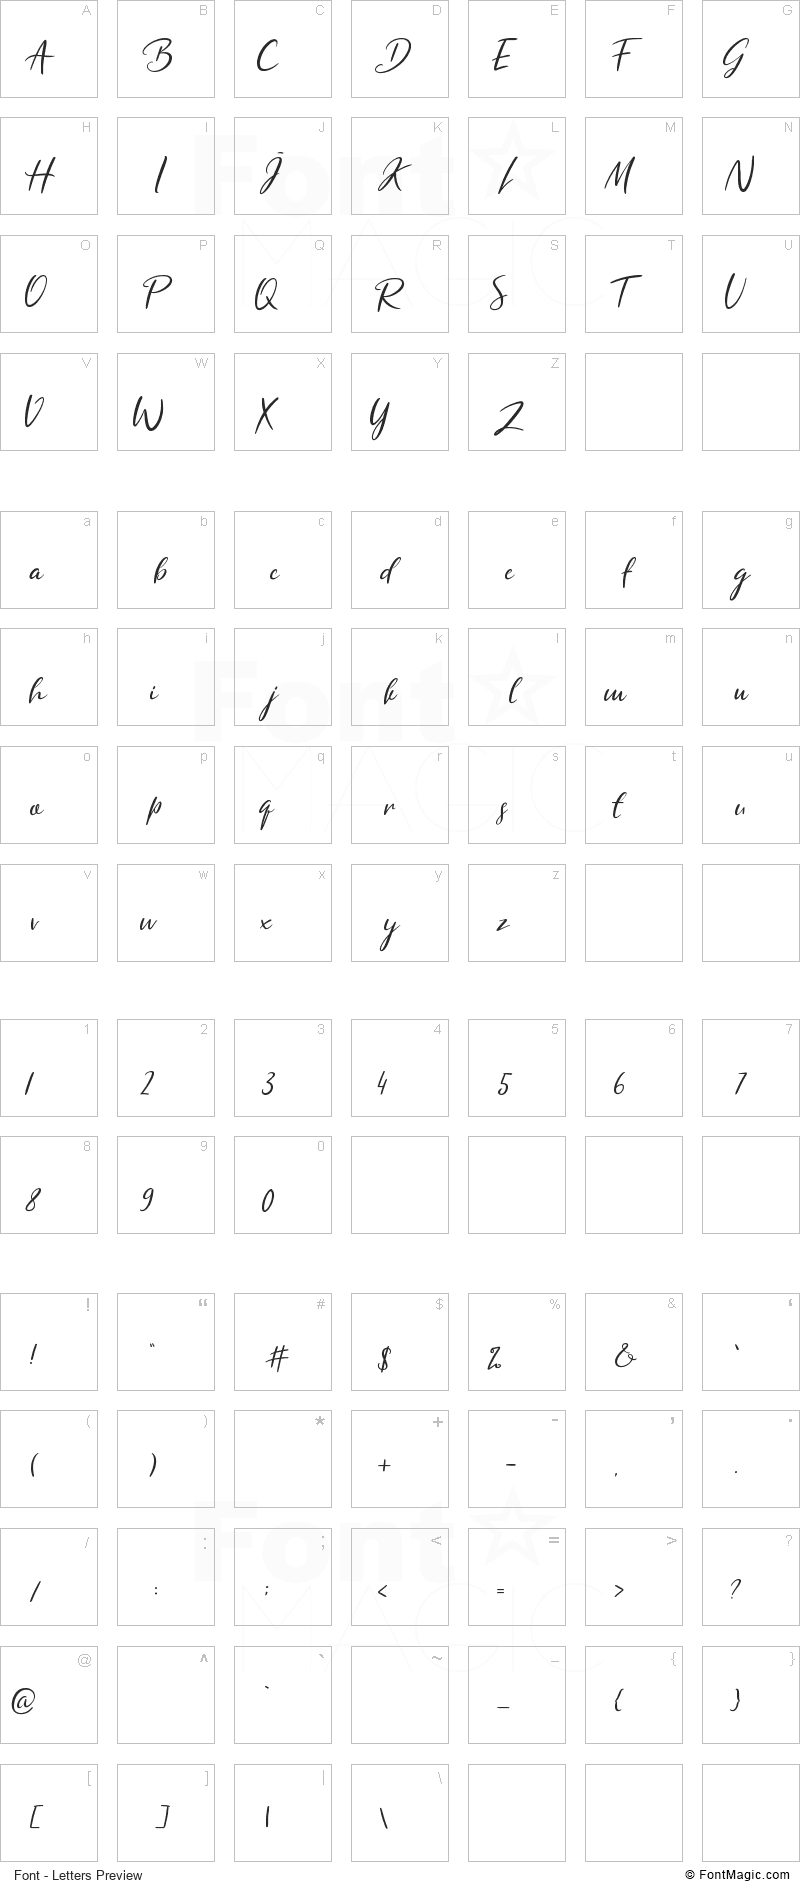 South Font - All Latters Preview Chart